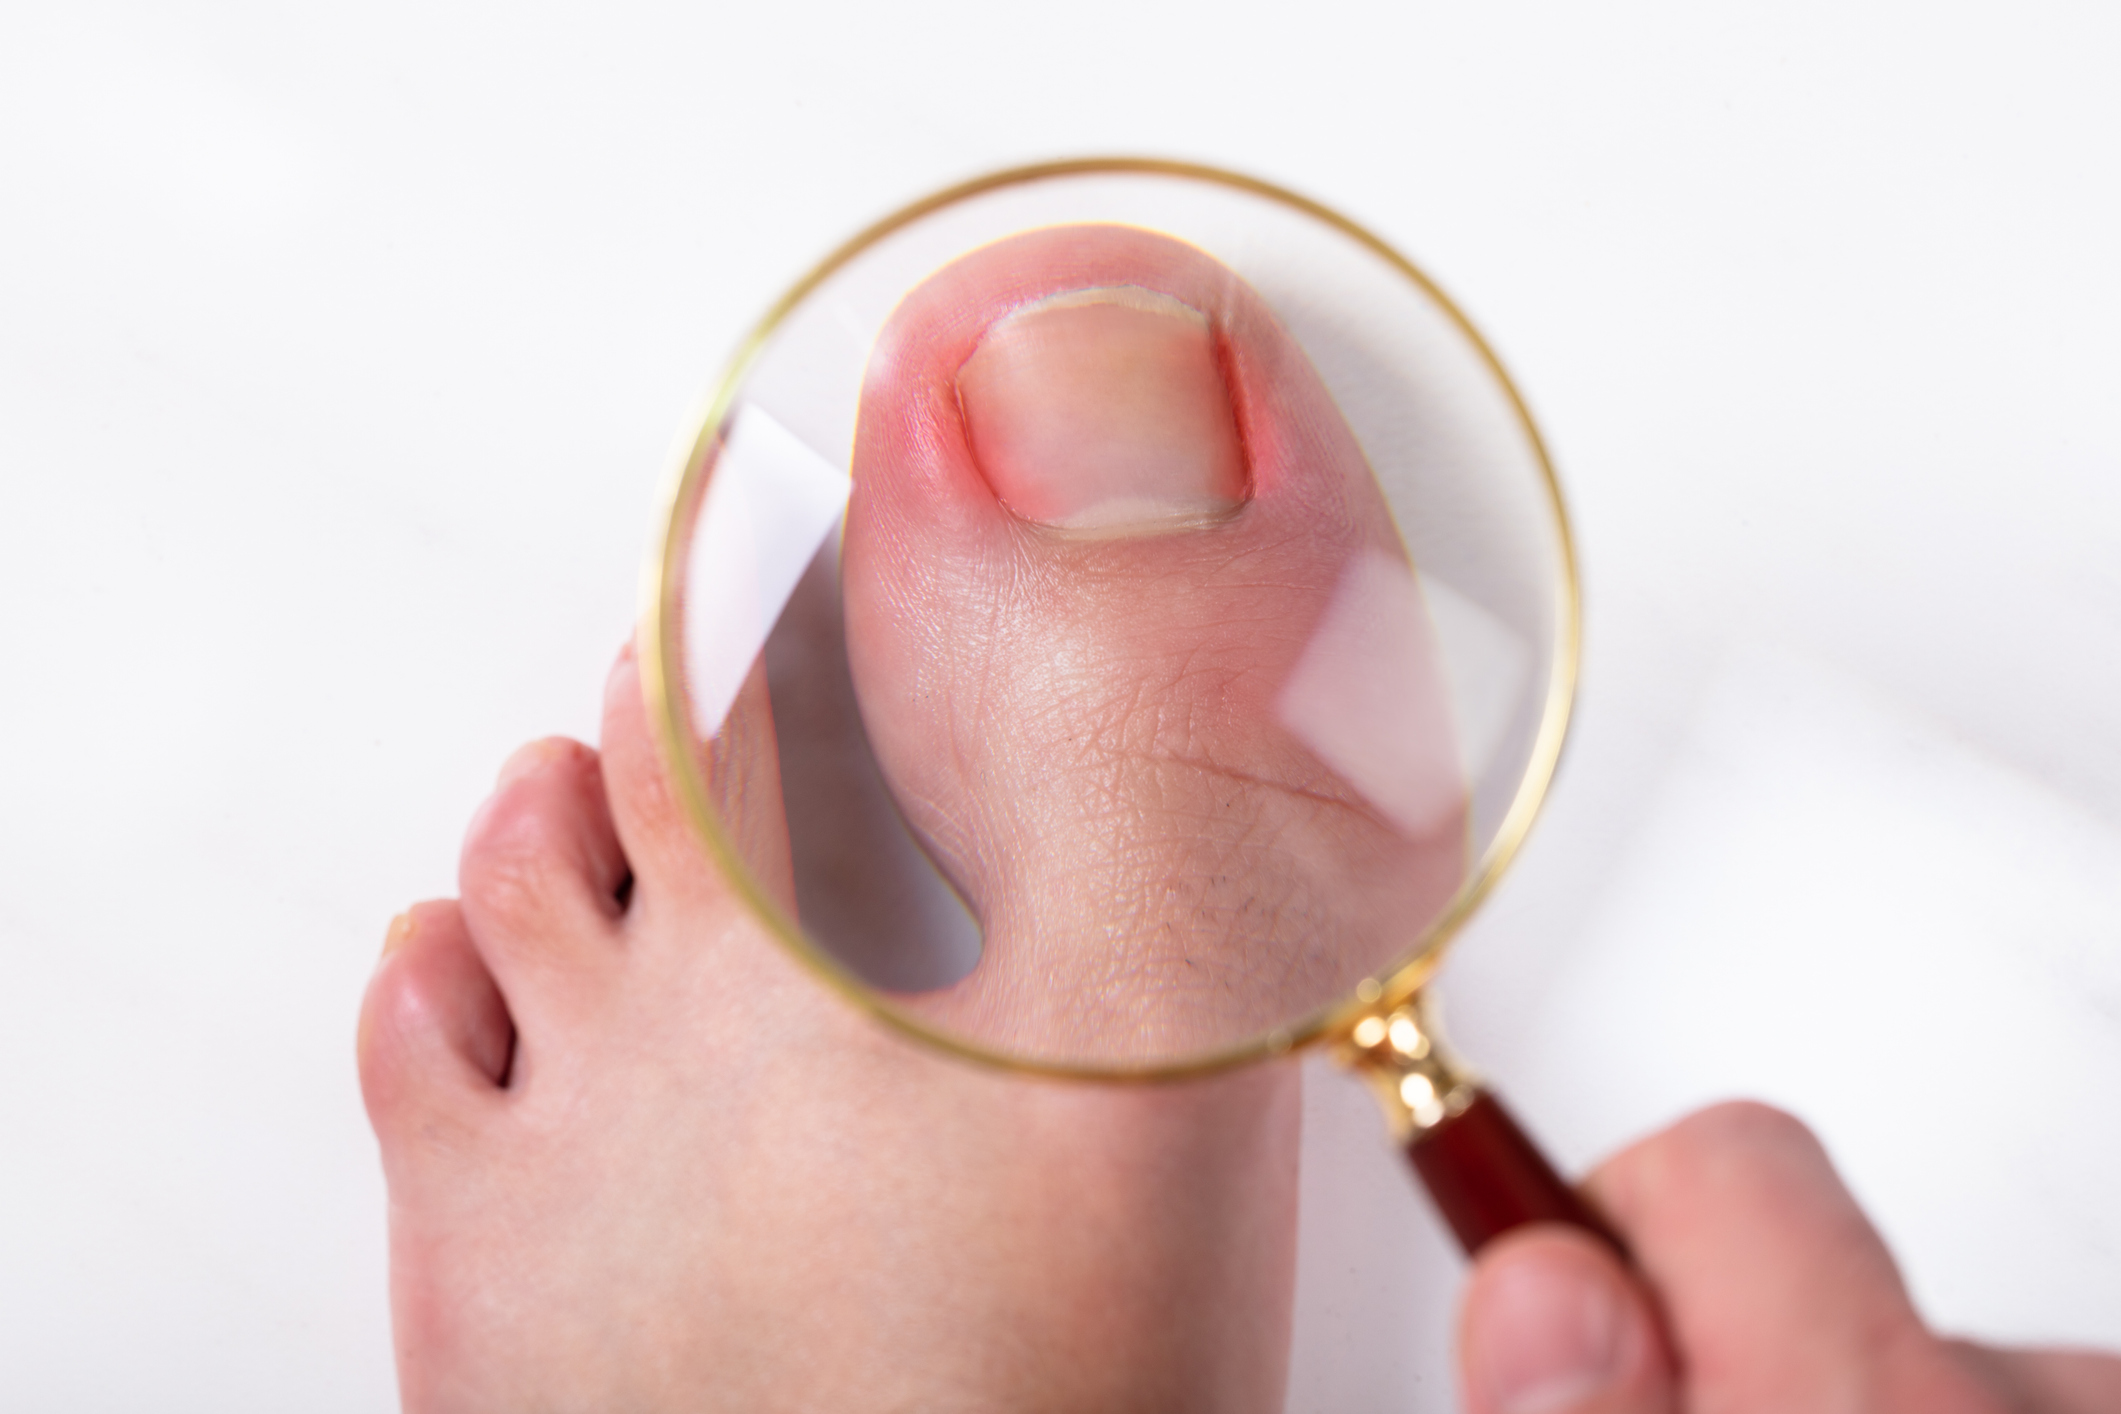 How To Treat Ingrown Toenails In Children The Podiatry